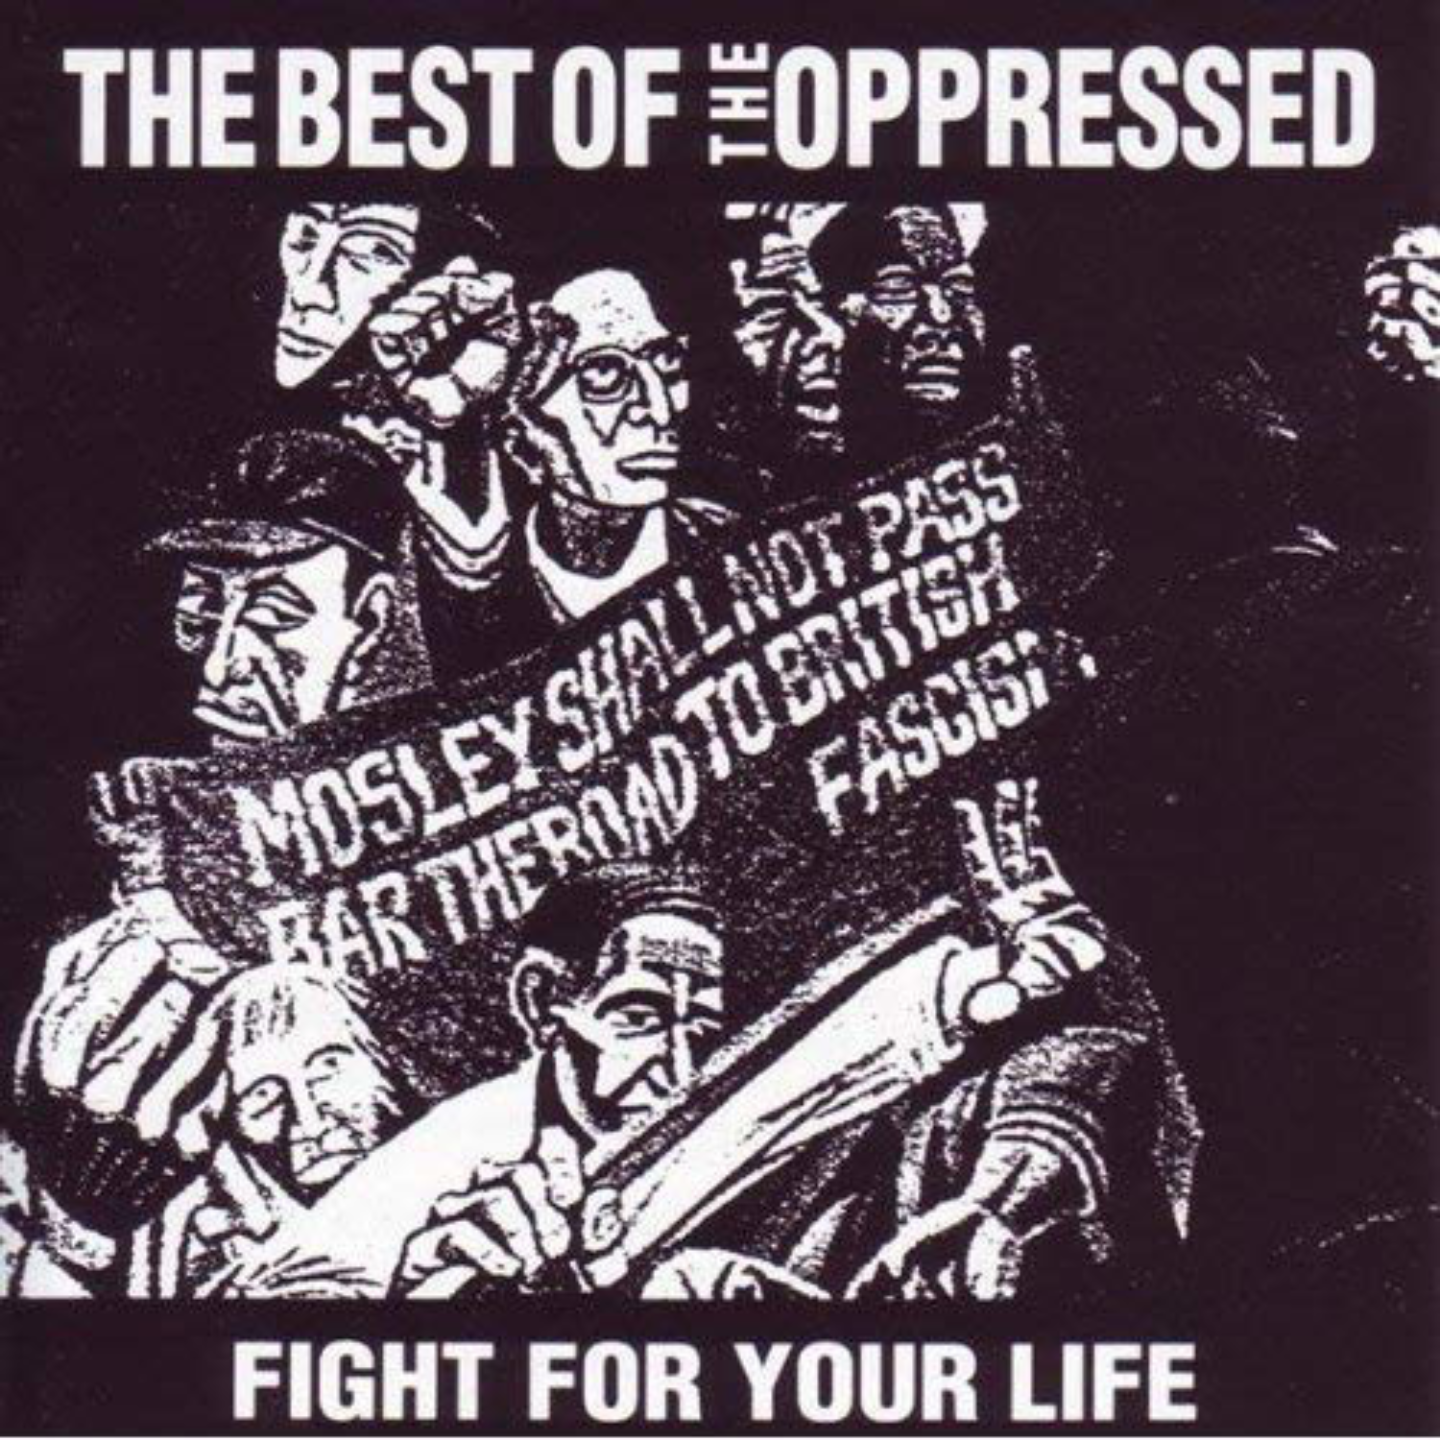 OPPRESSED, THE - Fight For Your Life / The Best Of The Oppressed LP (Orange Vinyl)